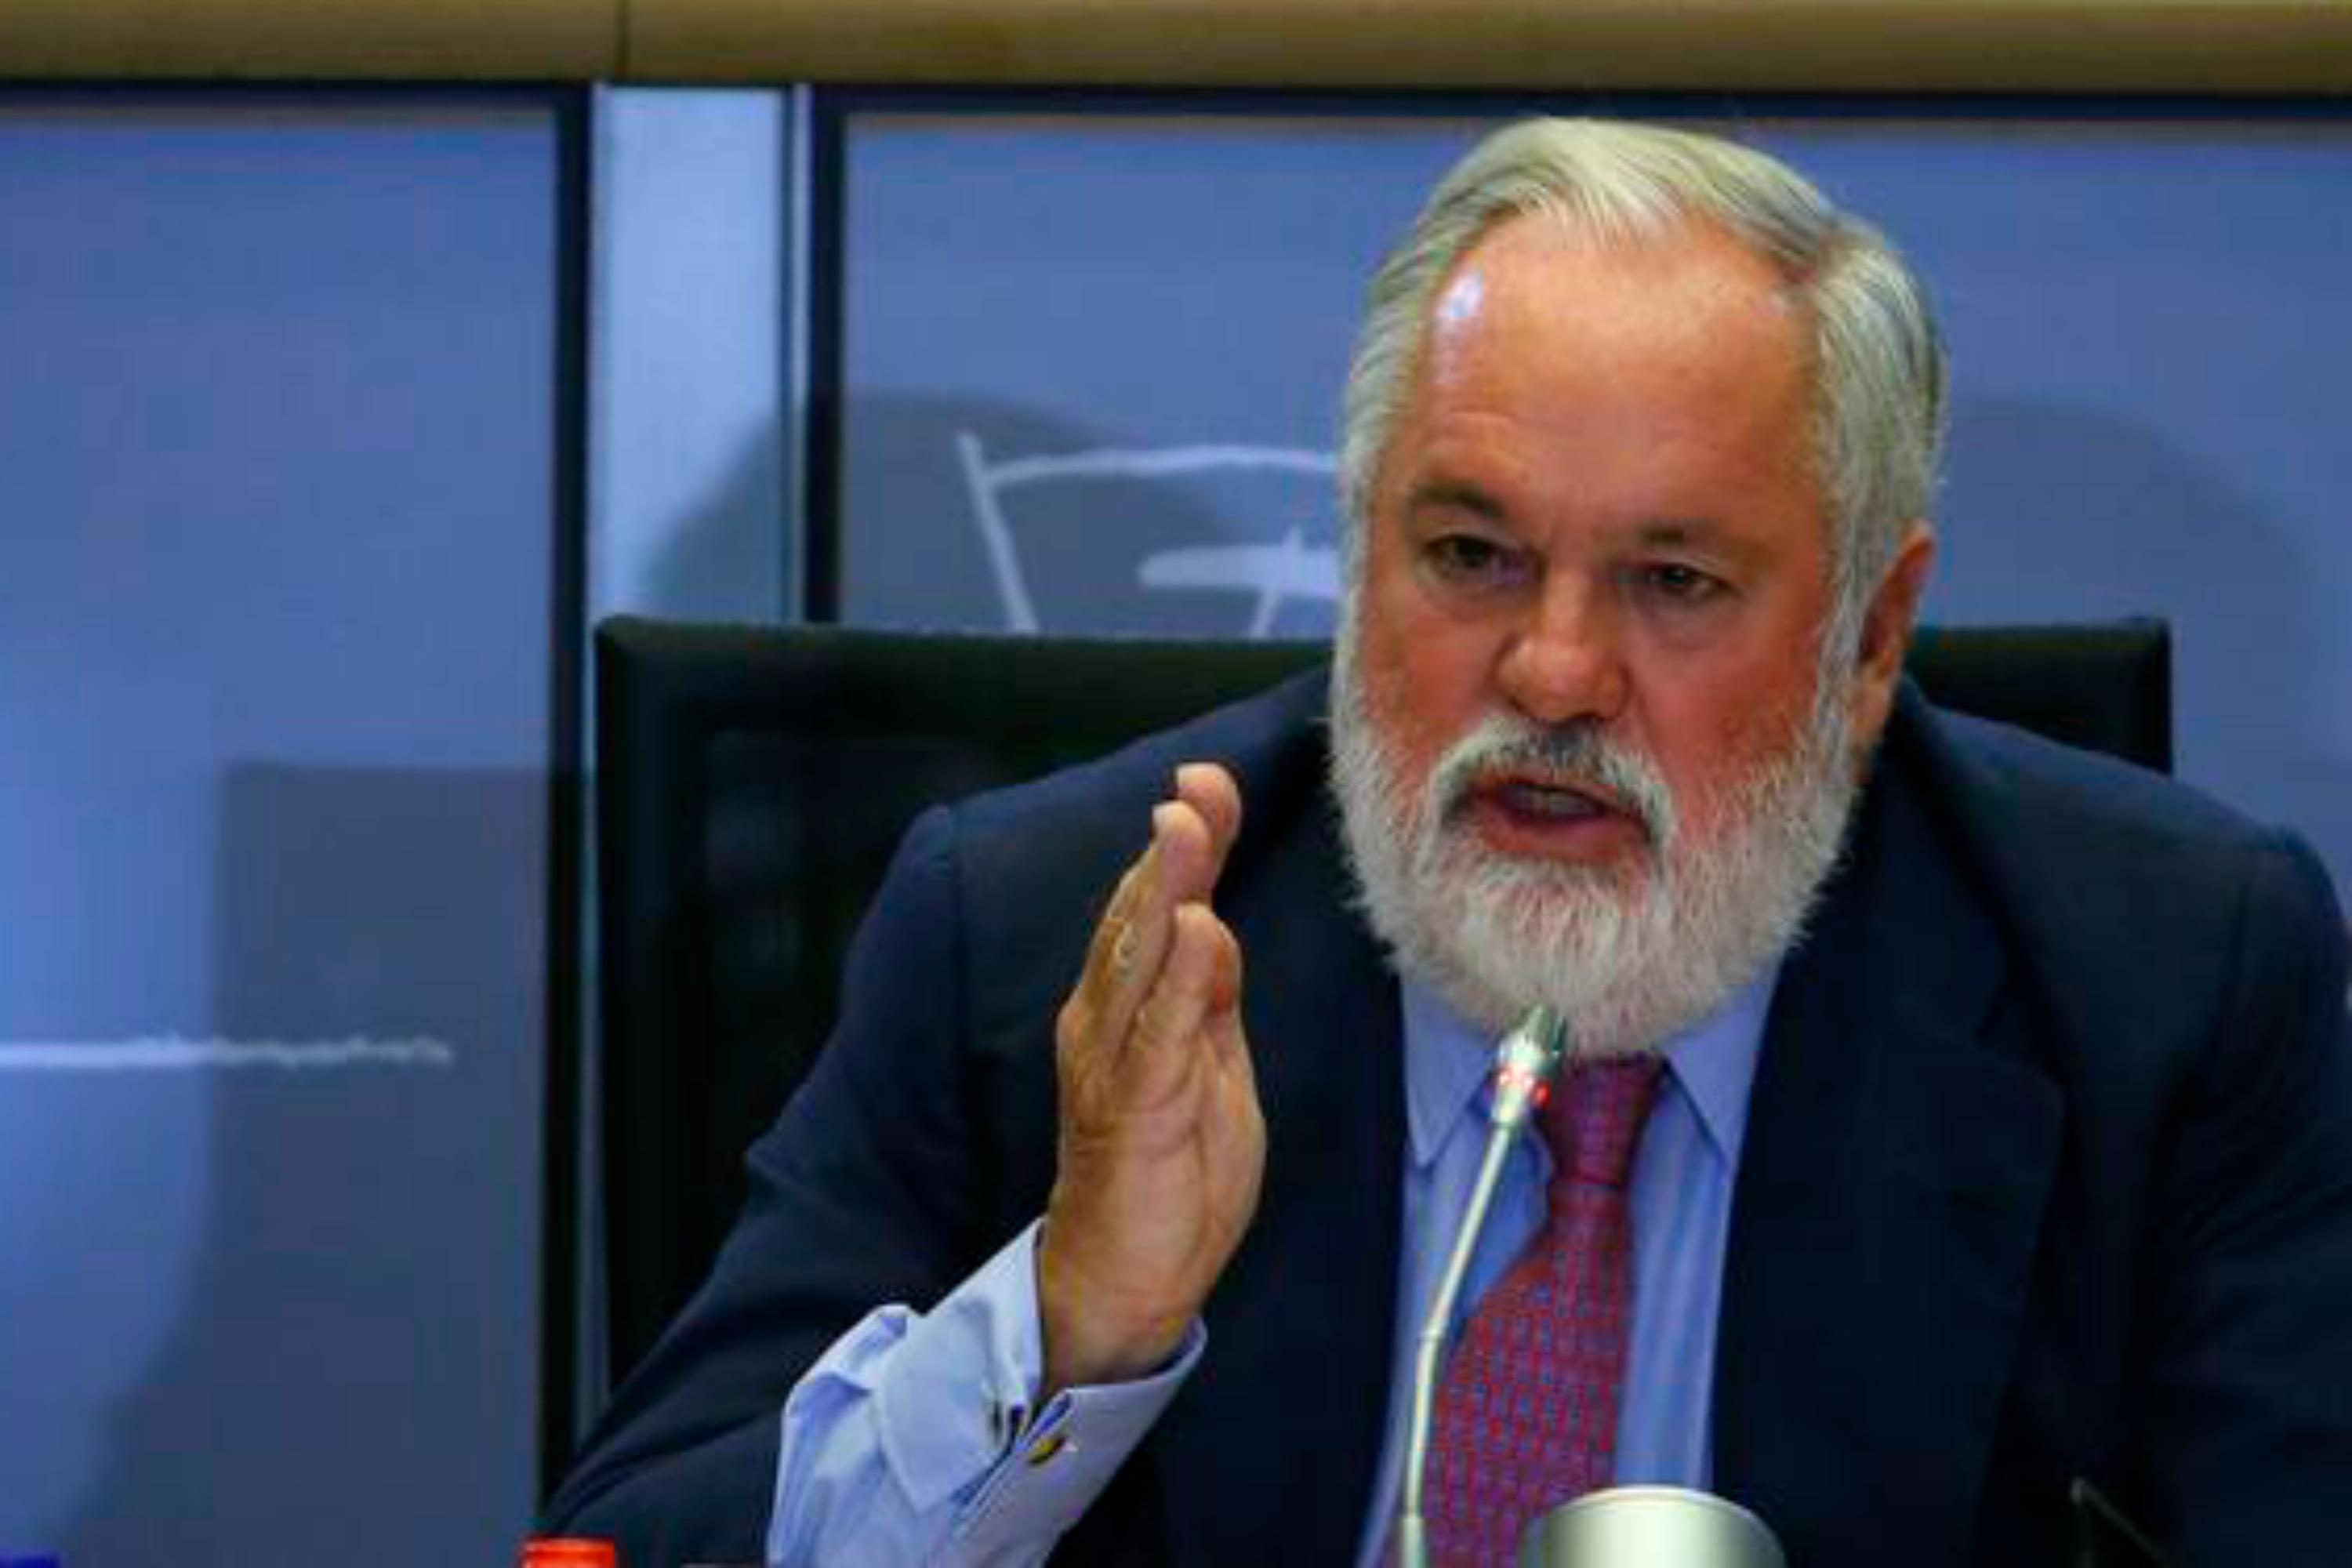 Miguel Arias Cañete warned member states would face infringement proceedings during his hearing [European Parliament]